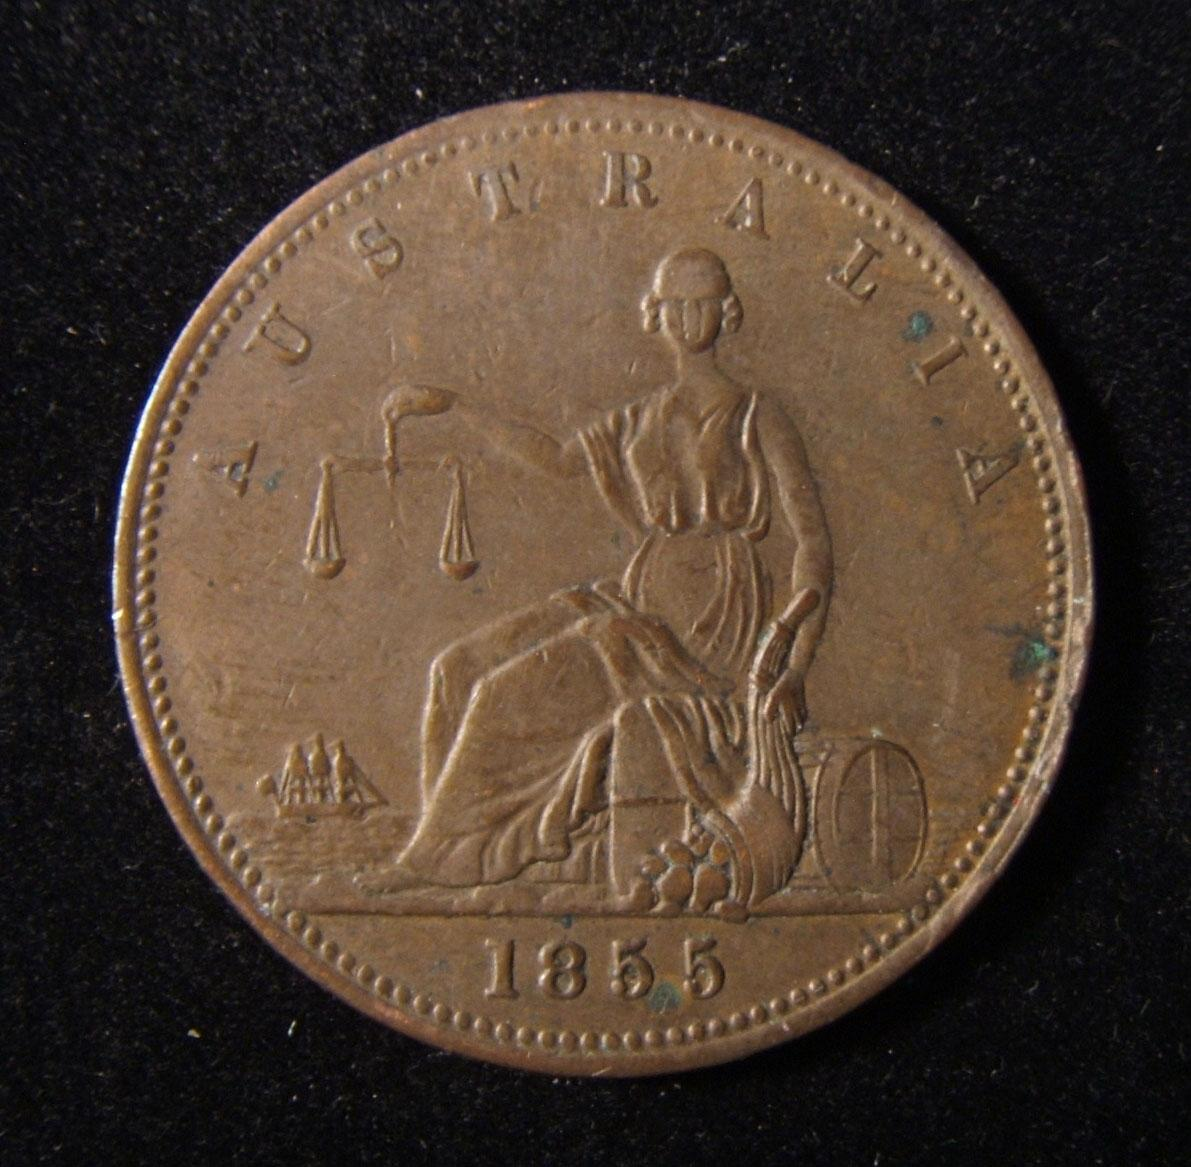 Australia: Levy Brothers of Melbourne [Jewish] merchant copper Penny 1855 (A.320, KM #Tn147); size: 33.75mm; weight: 15.85g; in VF+. Obv.: double ring leg.: